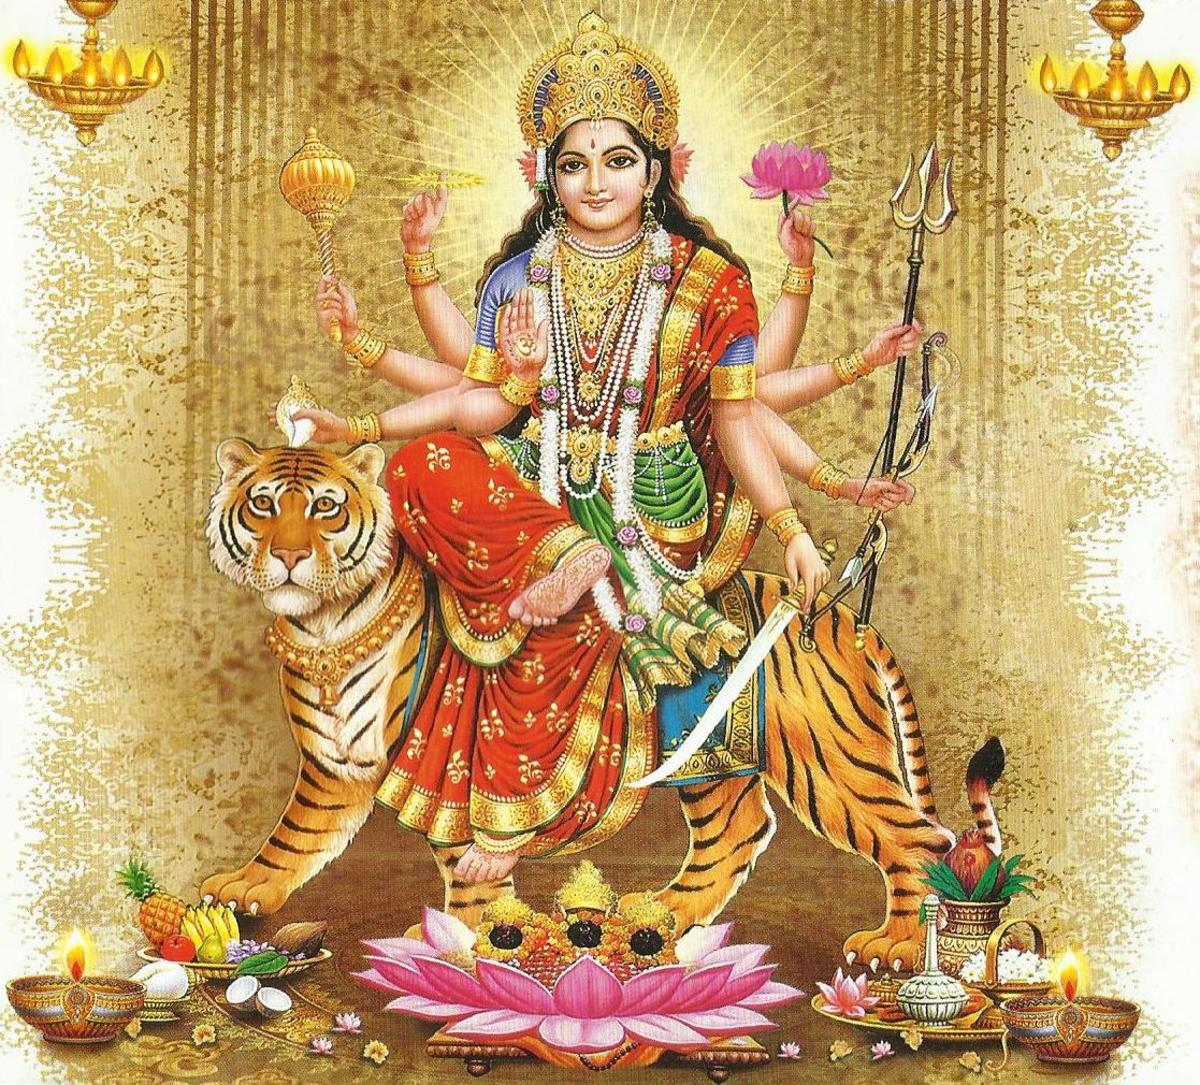 Mantras of Goddess Durga - The Universal Mother